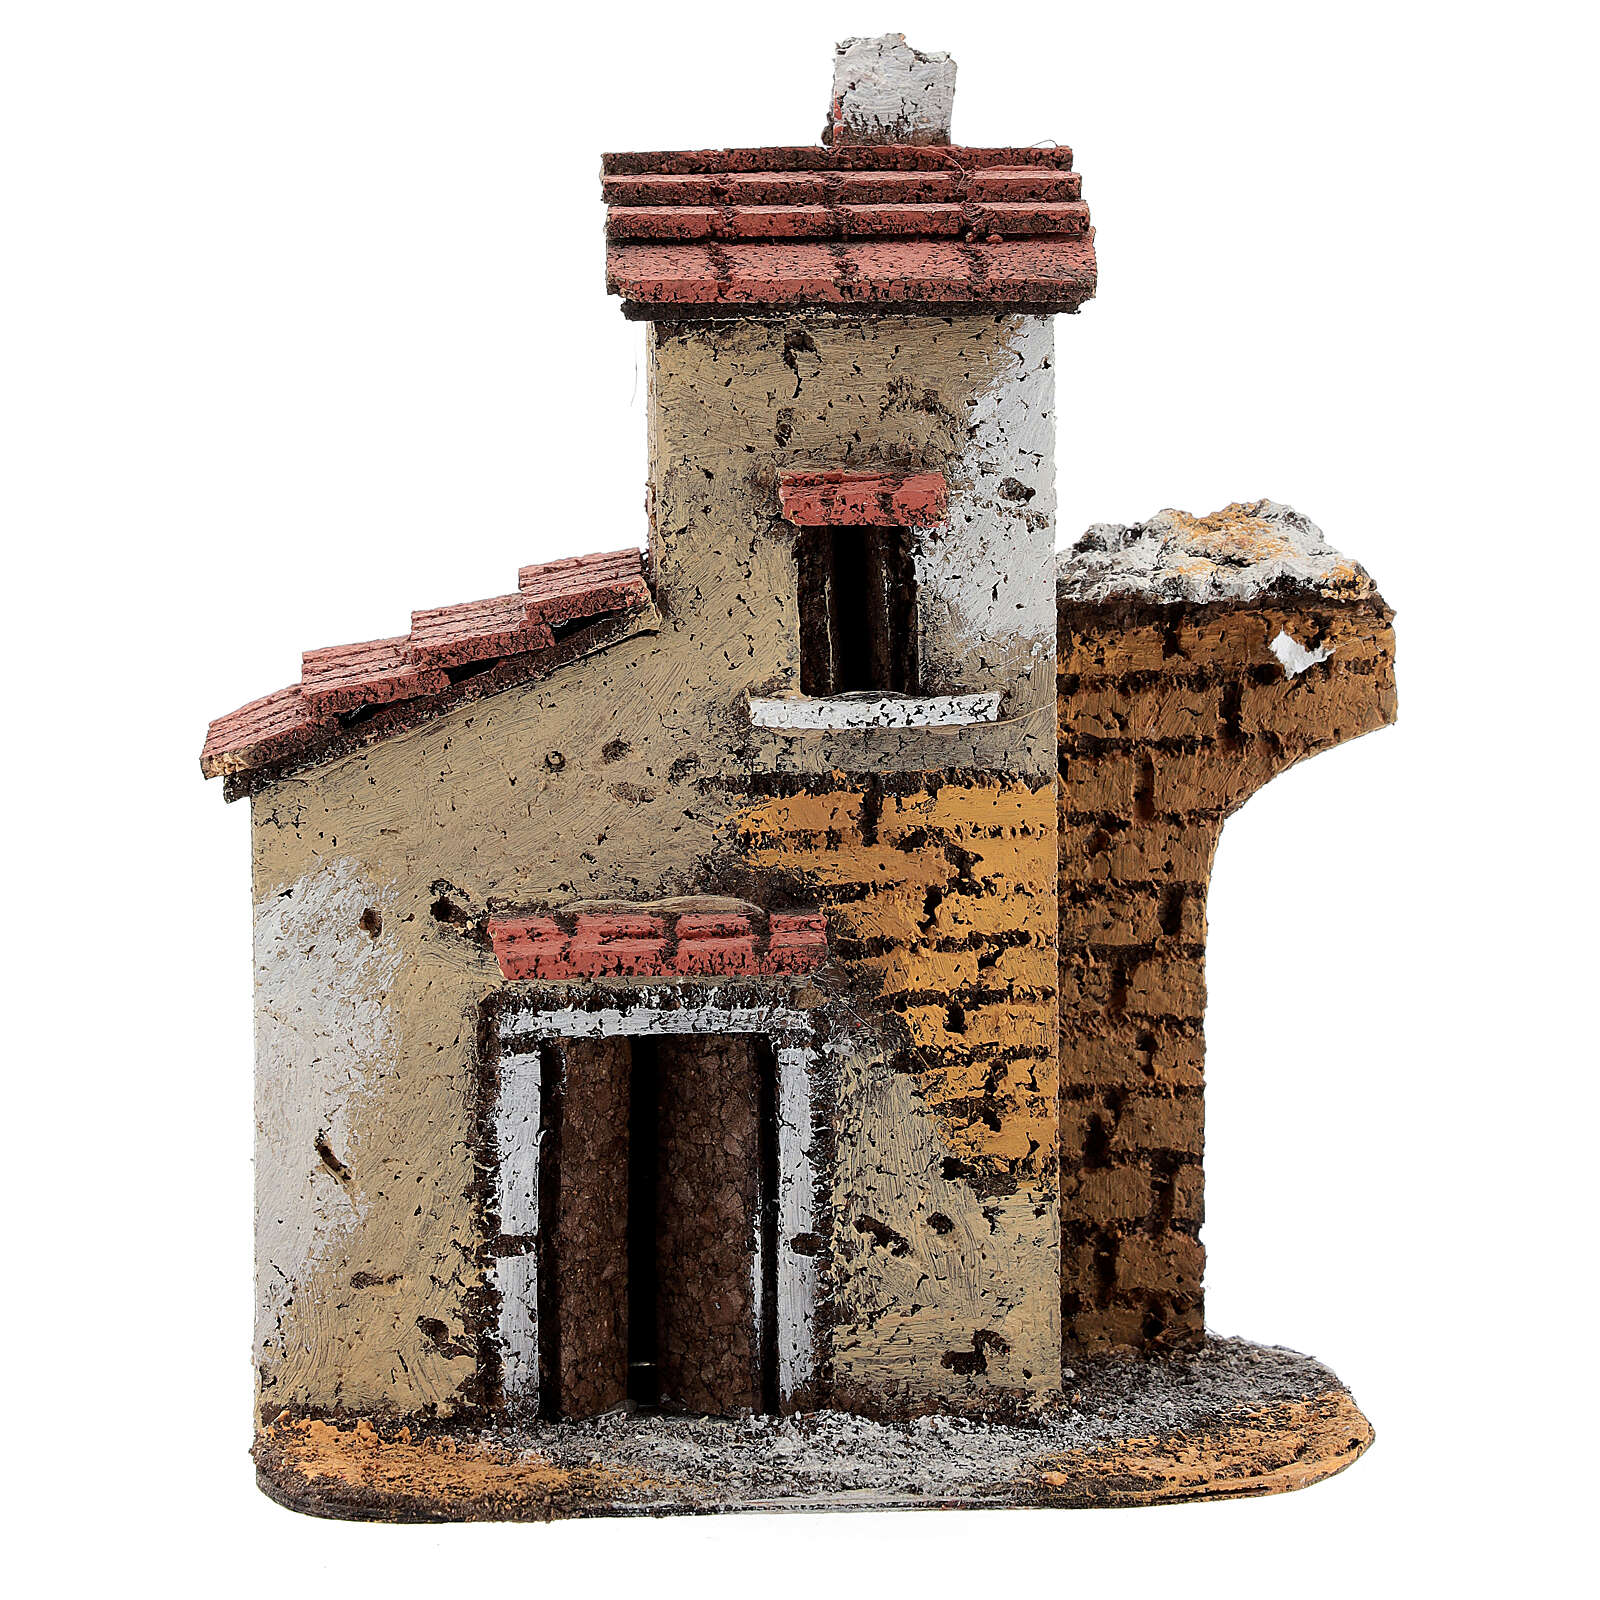 Cork house with ruined arch for Neapolitan Nativity Scene with 4-6 cm figurines 15x15x5 cm 4